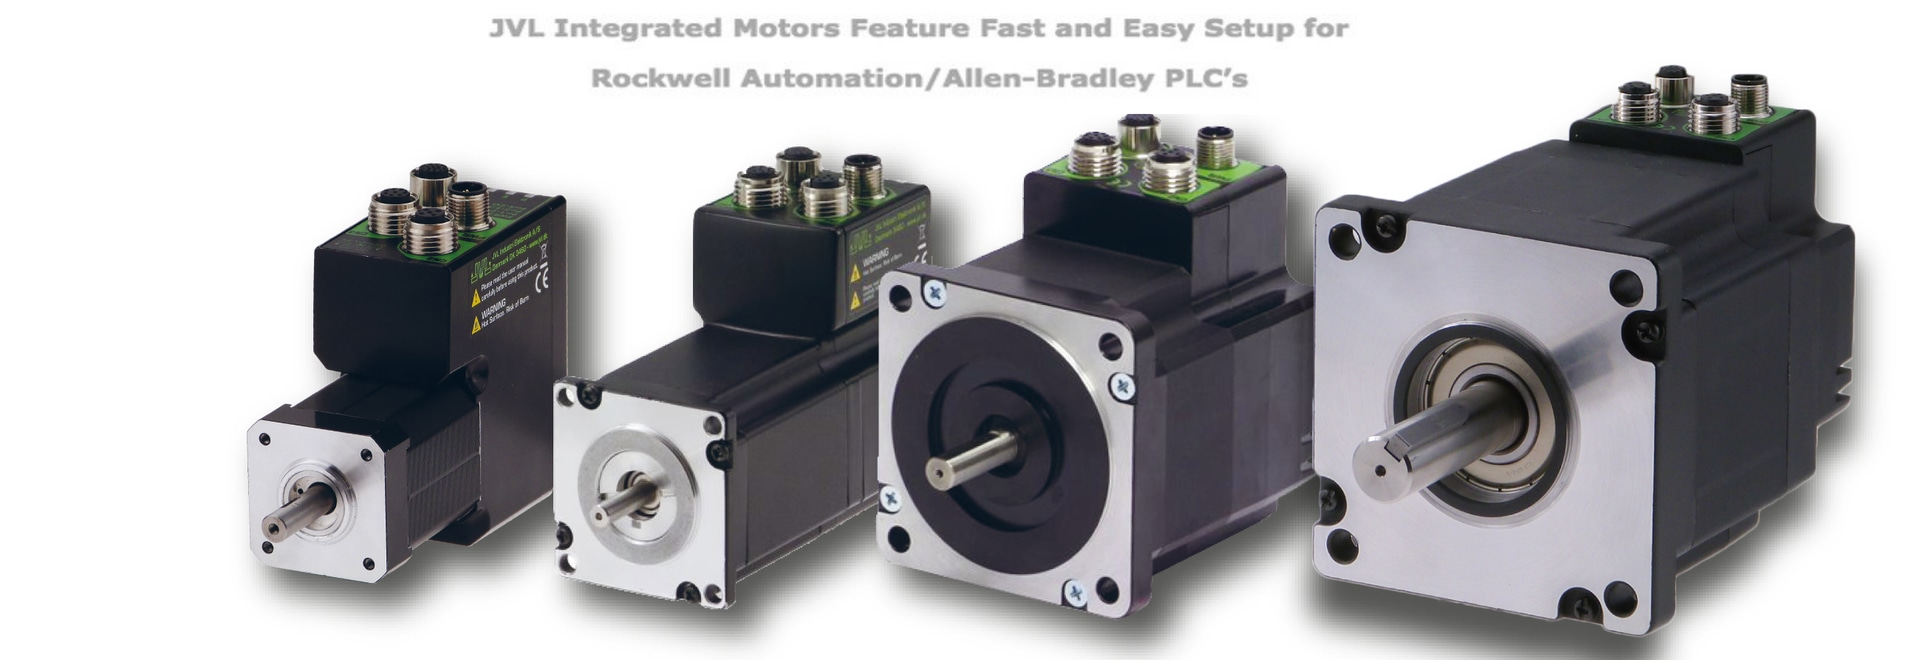 JVL Integrated Motors Feature Fast and Easy Setup for Rockwell Automation/Allen-Bradley PLCs